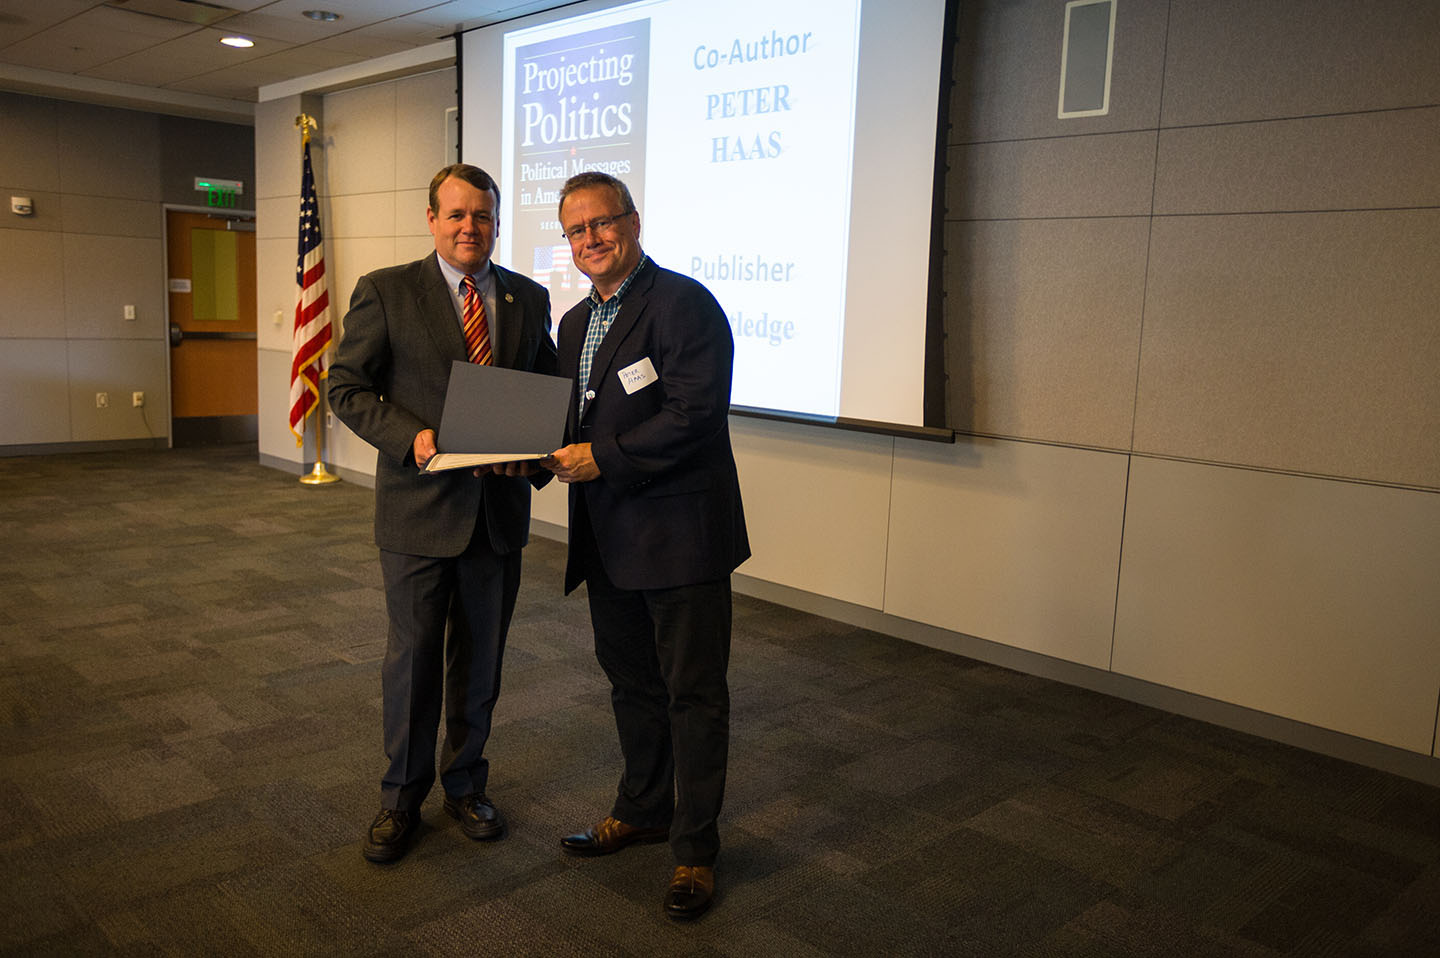 Provost Andy Feinstein, left, presents a certificate to Professor Peter Haas at the Annual Author Awards in October. Haas is one of two dozen faculty members honored at the event.